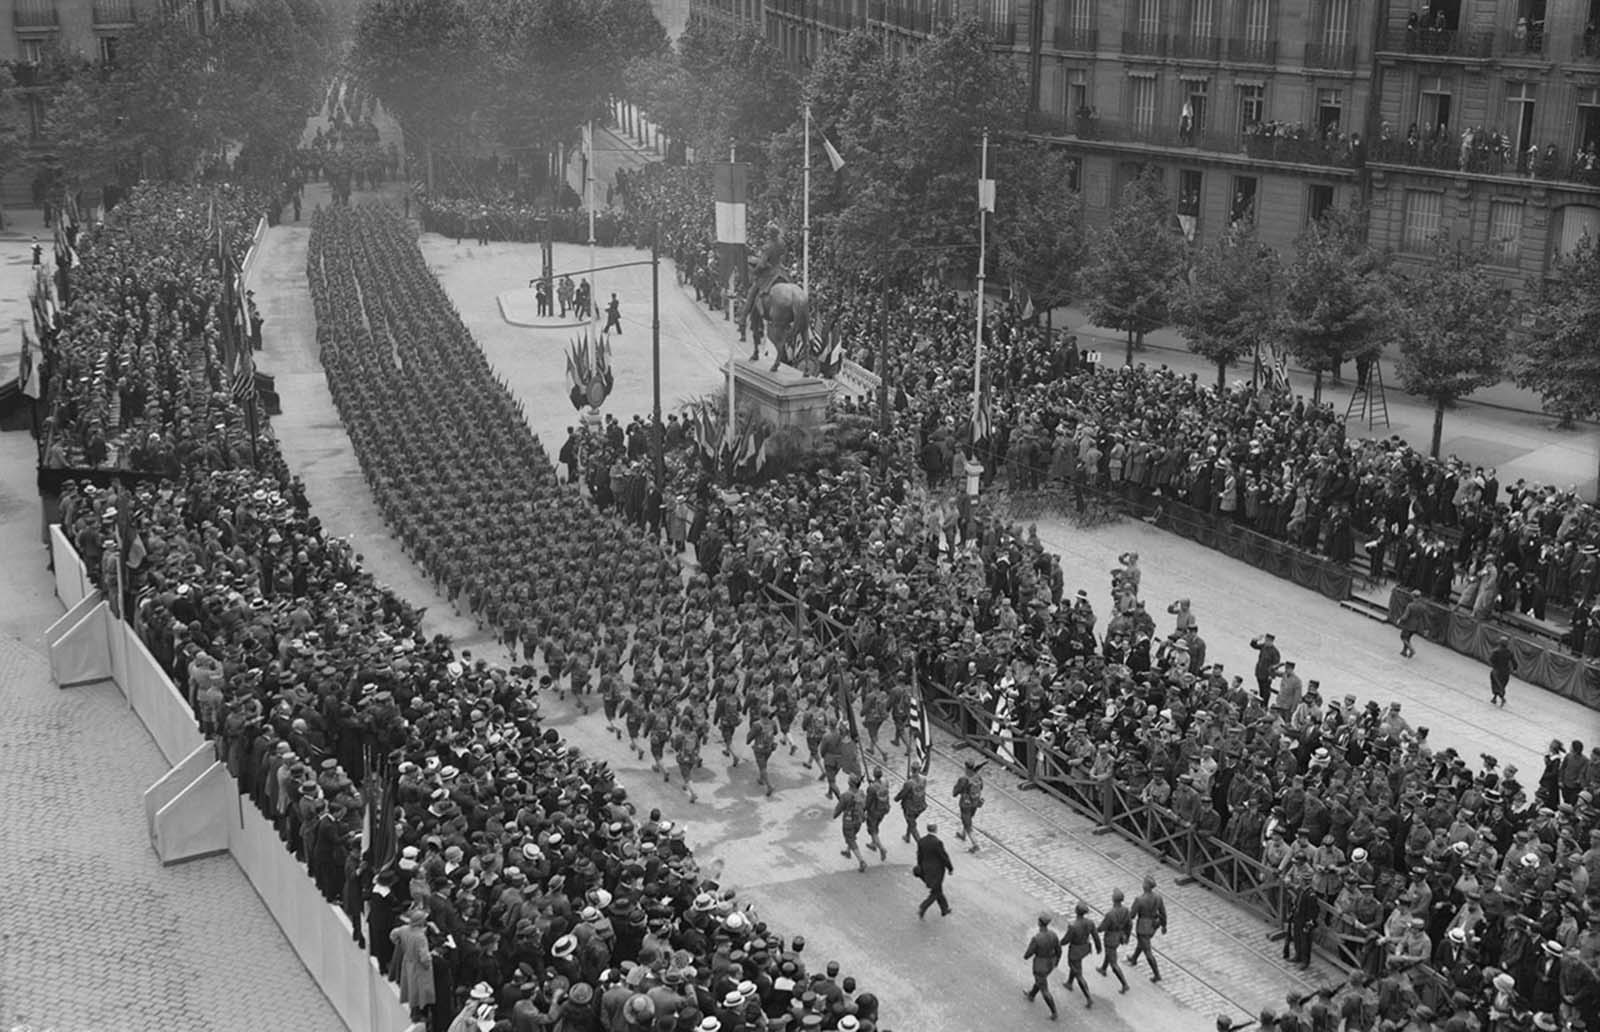 American troops march through Place de Jena and down Avenue du President Wilson in Paris on July 4, 1918.